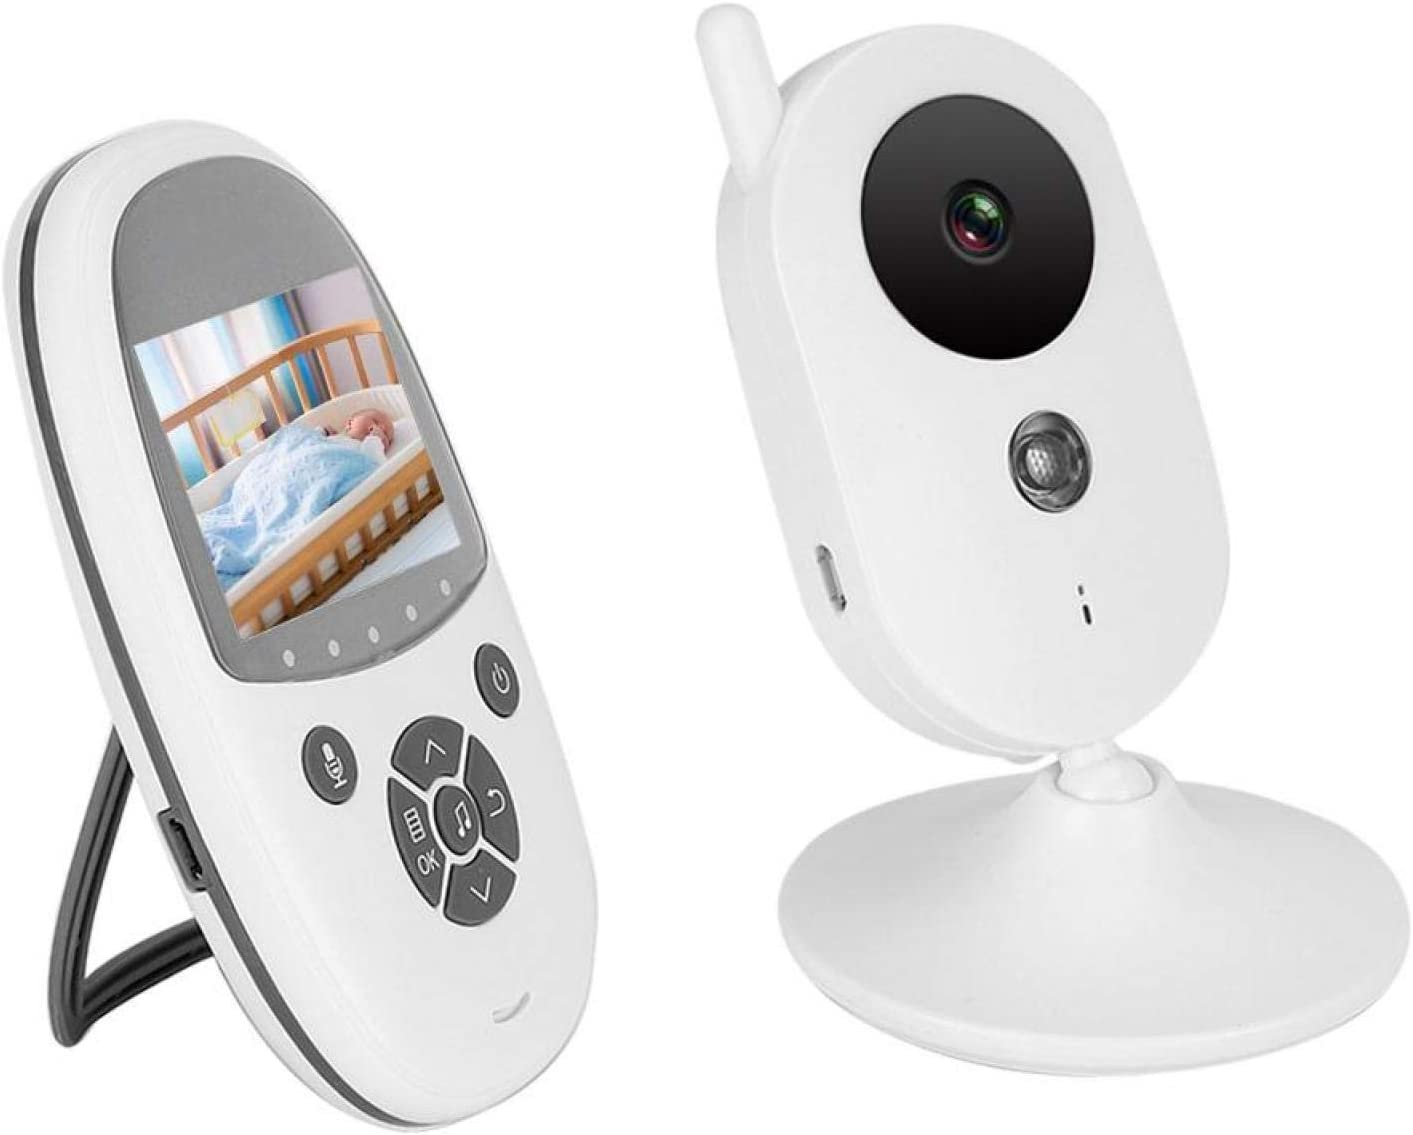 Under blast sales Baby Monitor Wireless Cry Detection Built-in Inf Microphone Mini Spring new work